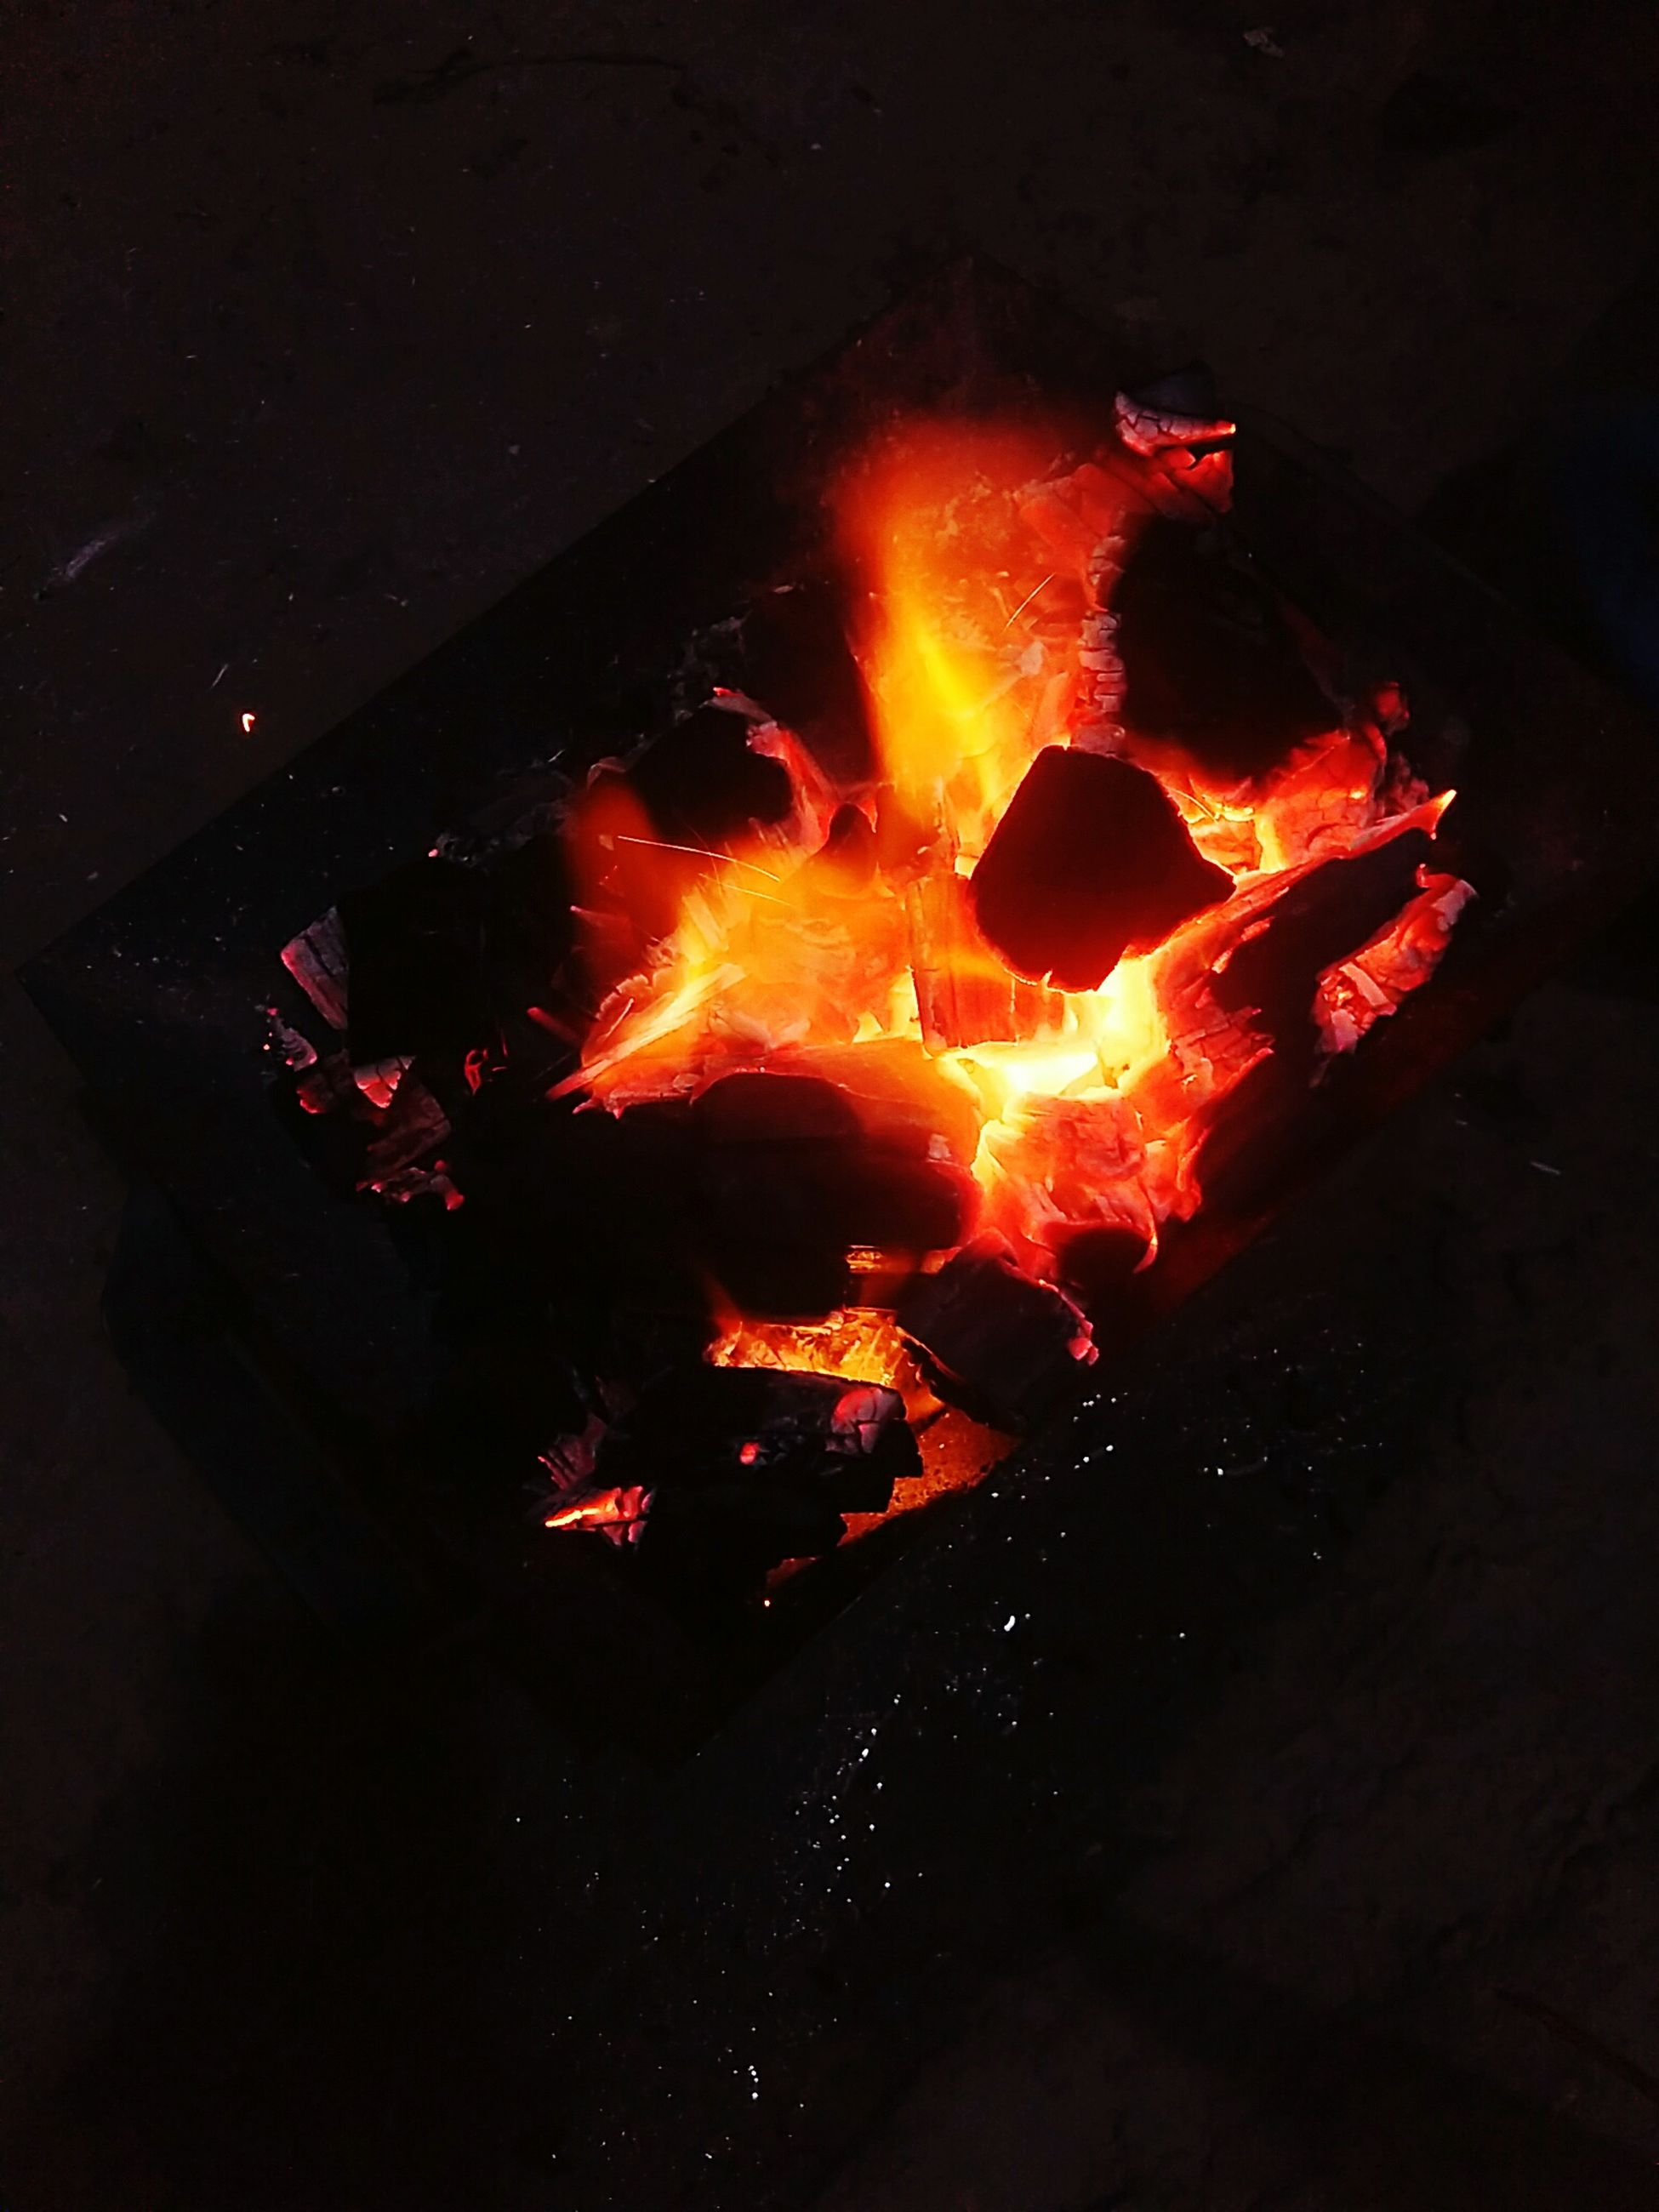 flame, burning, fire - natural phenomenon, heat - temperature, close-up, glowing, bonfire, firewood, campfire, fire, outdoors, luminosity, yellow color, heat, spark